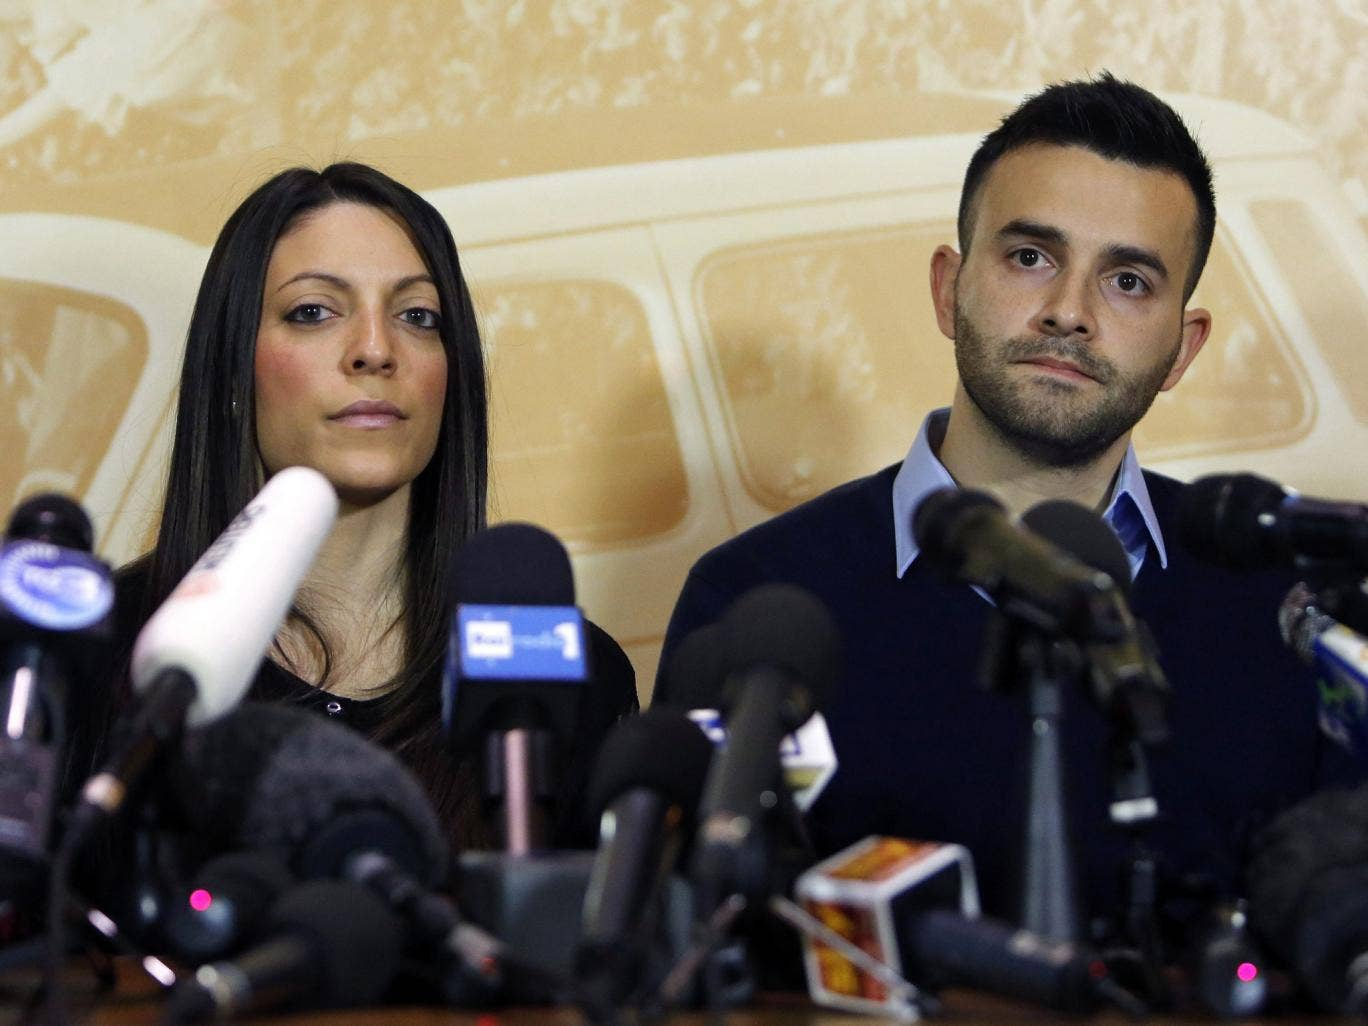 Stephanie Kercher (L) and Lyle Kercher, the sister and brother of murdered British student Meredith Kercher, attend a news conference in Florence